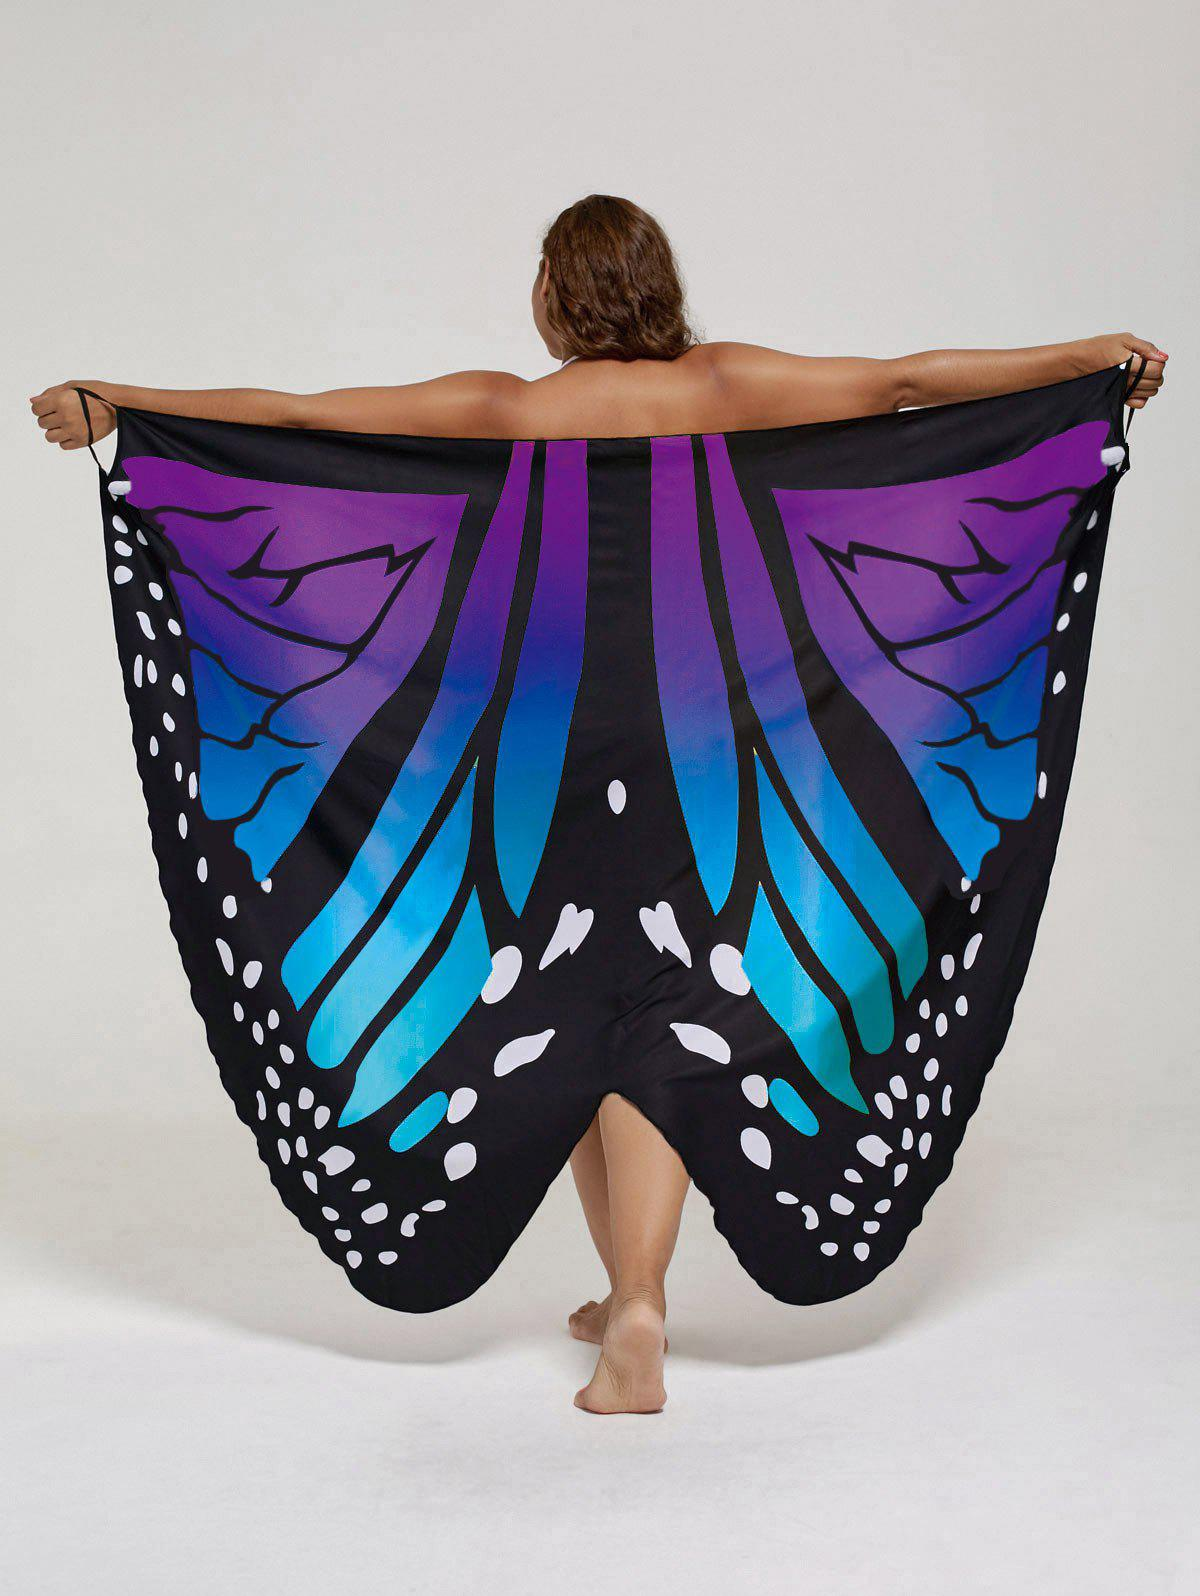 Plus Size Butterfly Beach Wrap Cover Up DressWOMEN<br><br>Size: 5XL; Color: BLUE + PURPLE; Gender: For Women; Swimwear Type: Cover-Up; Material: Polyester; Pattern Type: Insect; Waist: Natural; Weight: 0.2550kg; Package Contents: 1 x Dress;